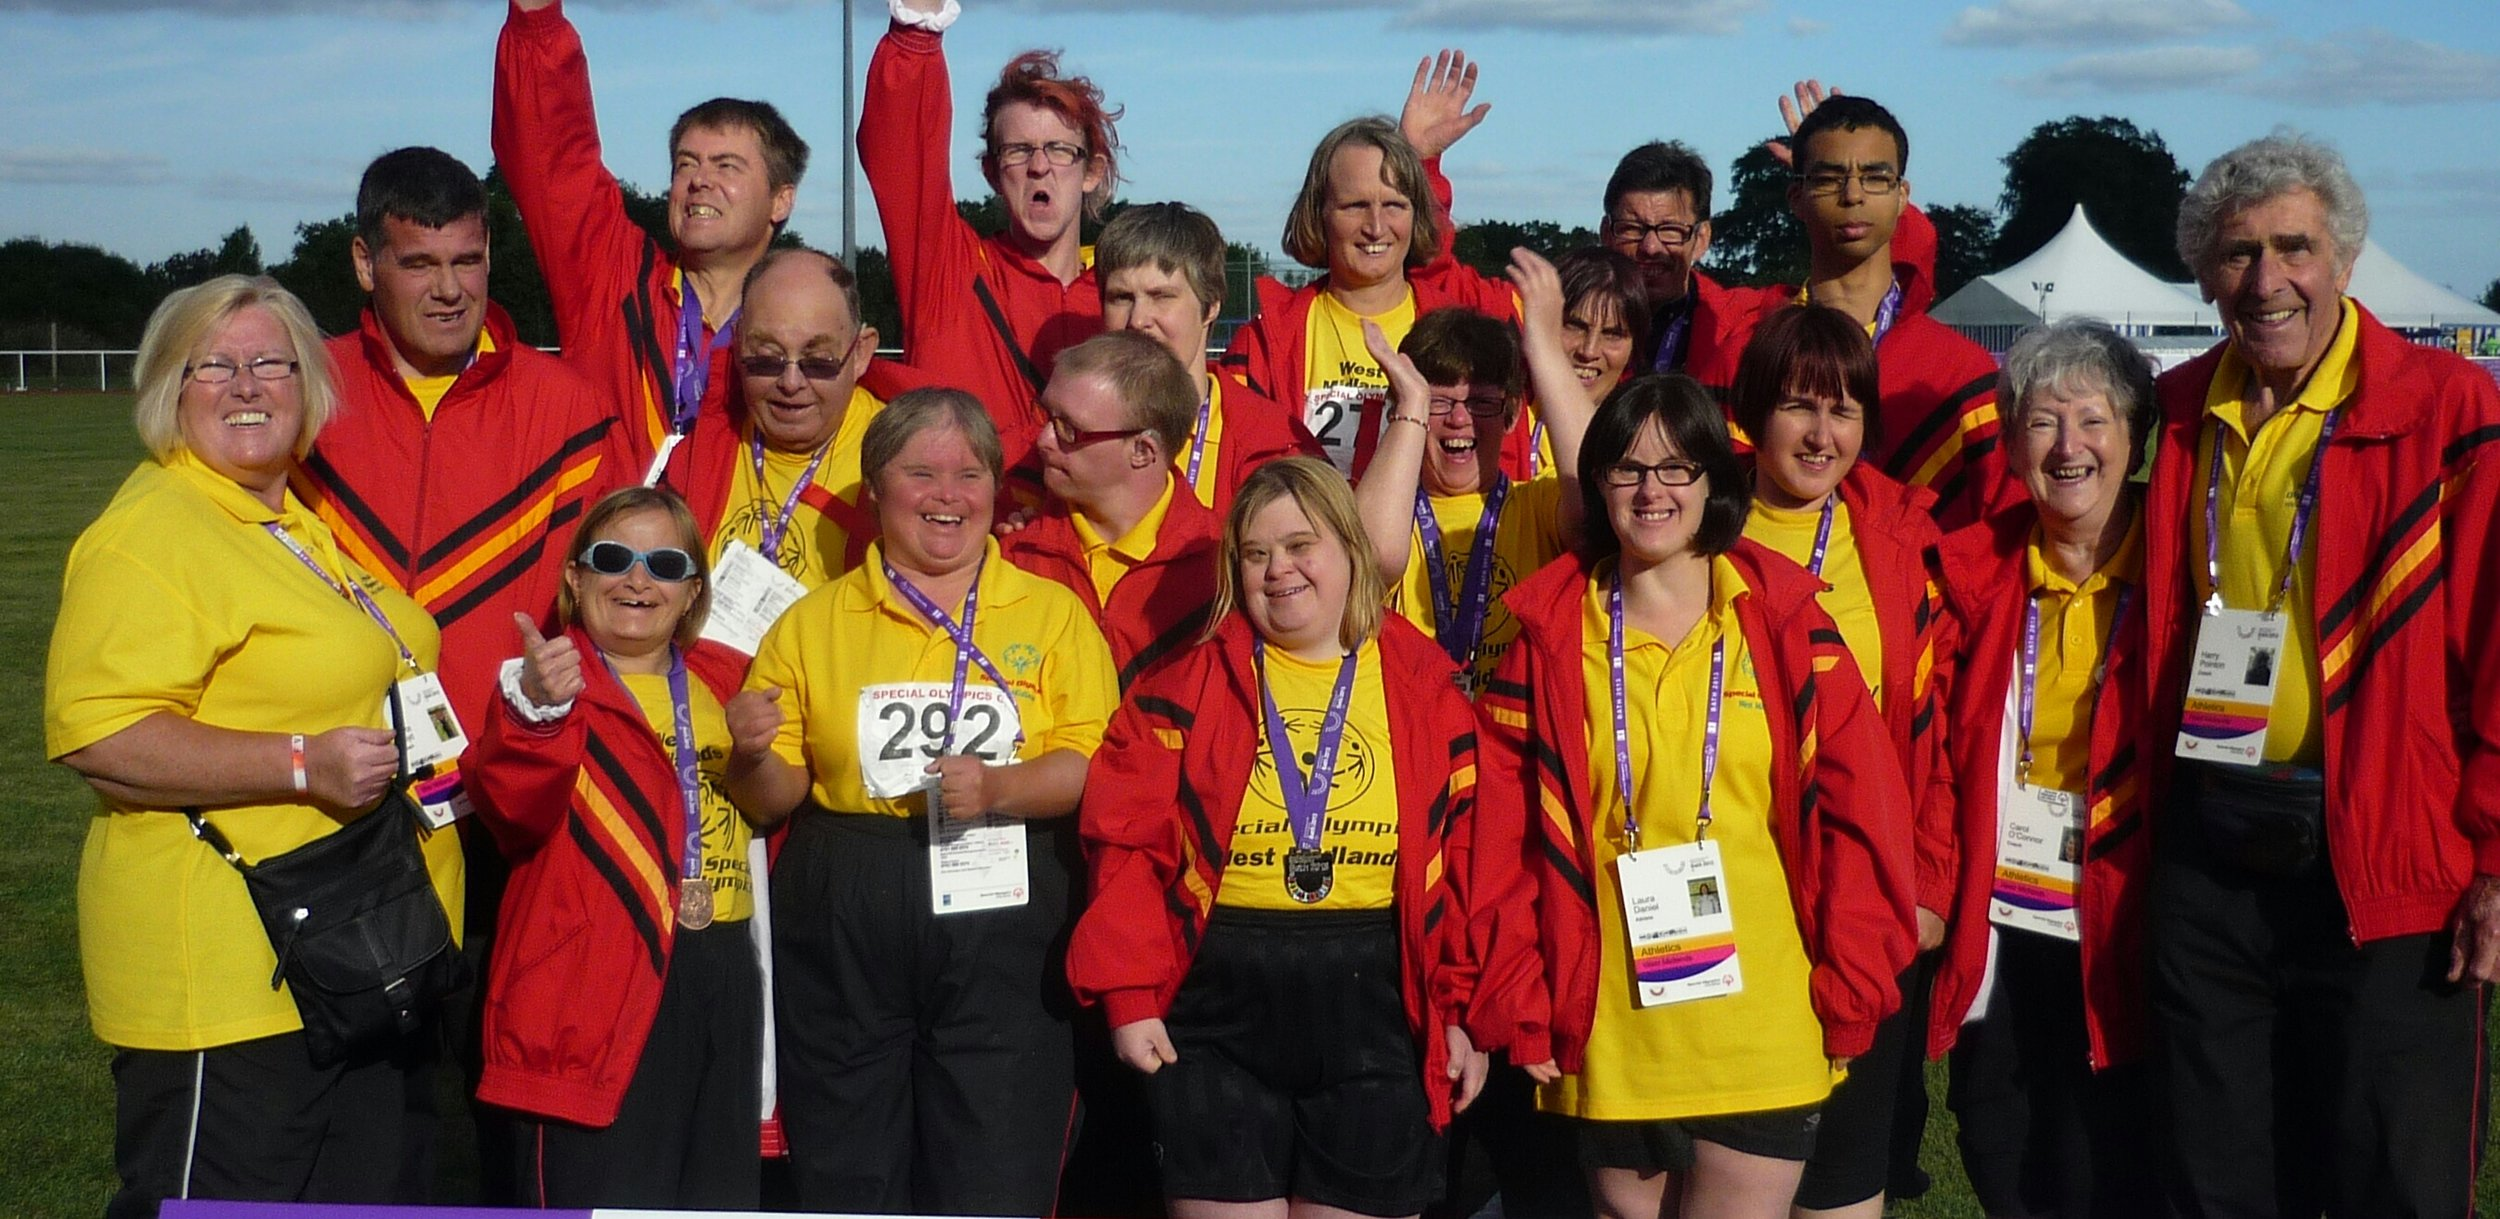 Some of the North Staffordshire athletes at the Special Olympics Games in Bath, 2013. Harry Pointon far right.